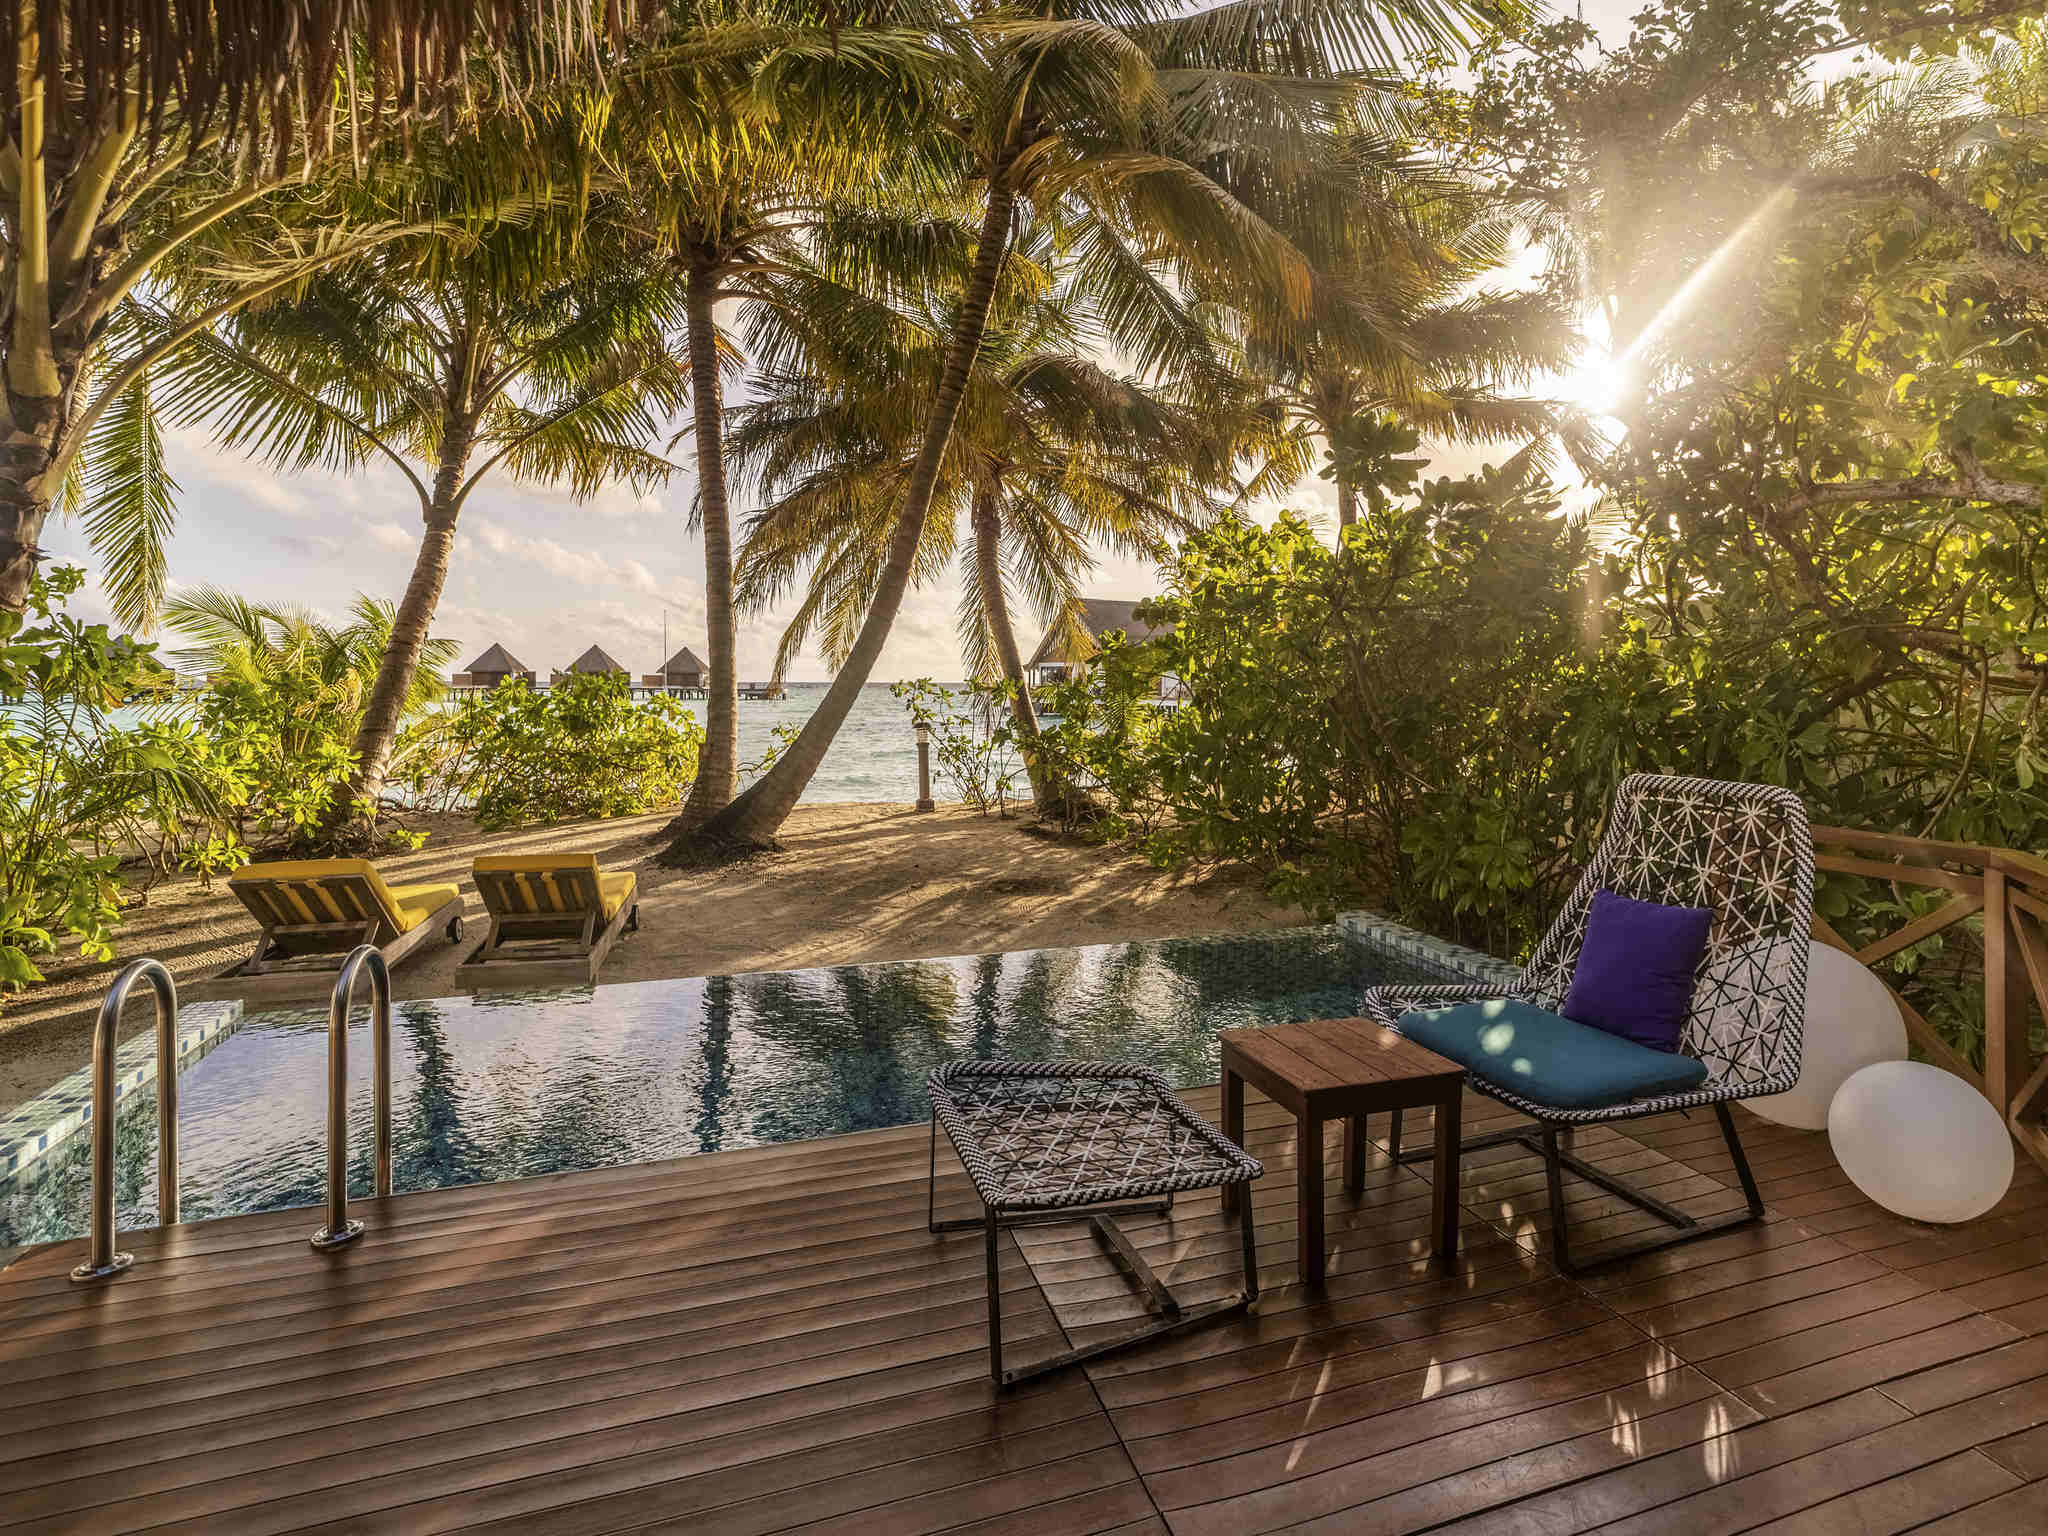 โรงแรม – Mercure Maldives Kooddoo Resort